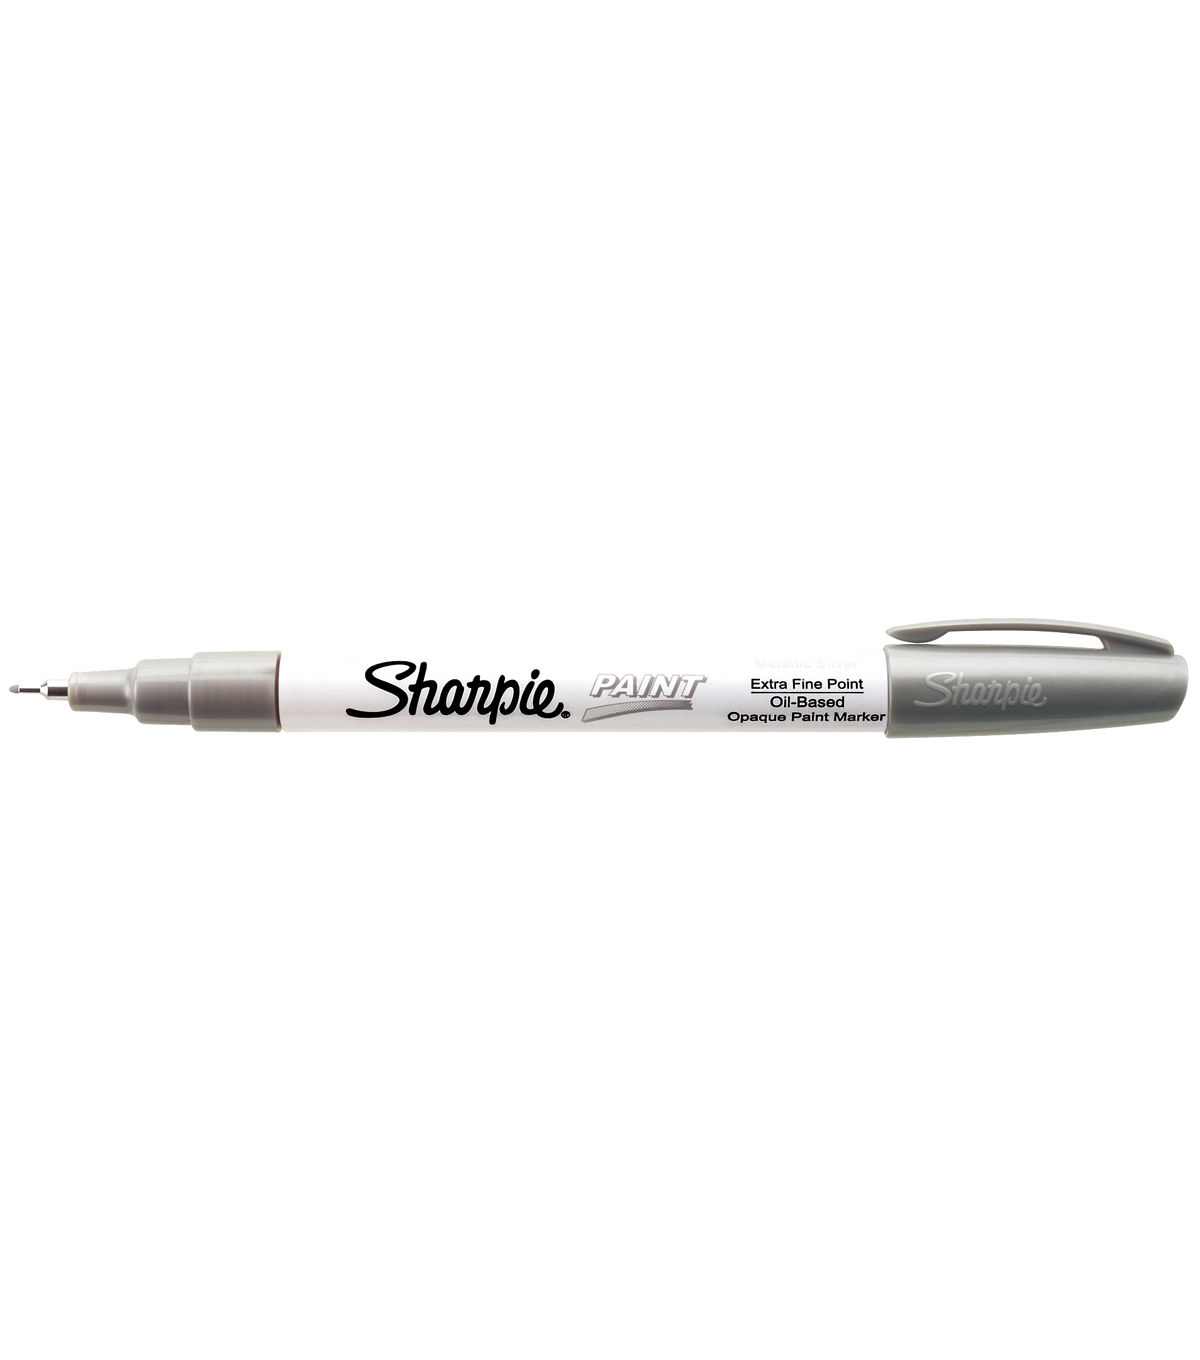 Sharpie Extra Fine Point Oil Based Paint Marker Sharpie Paint